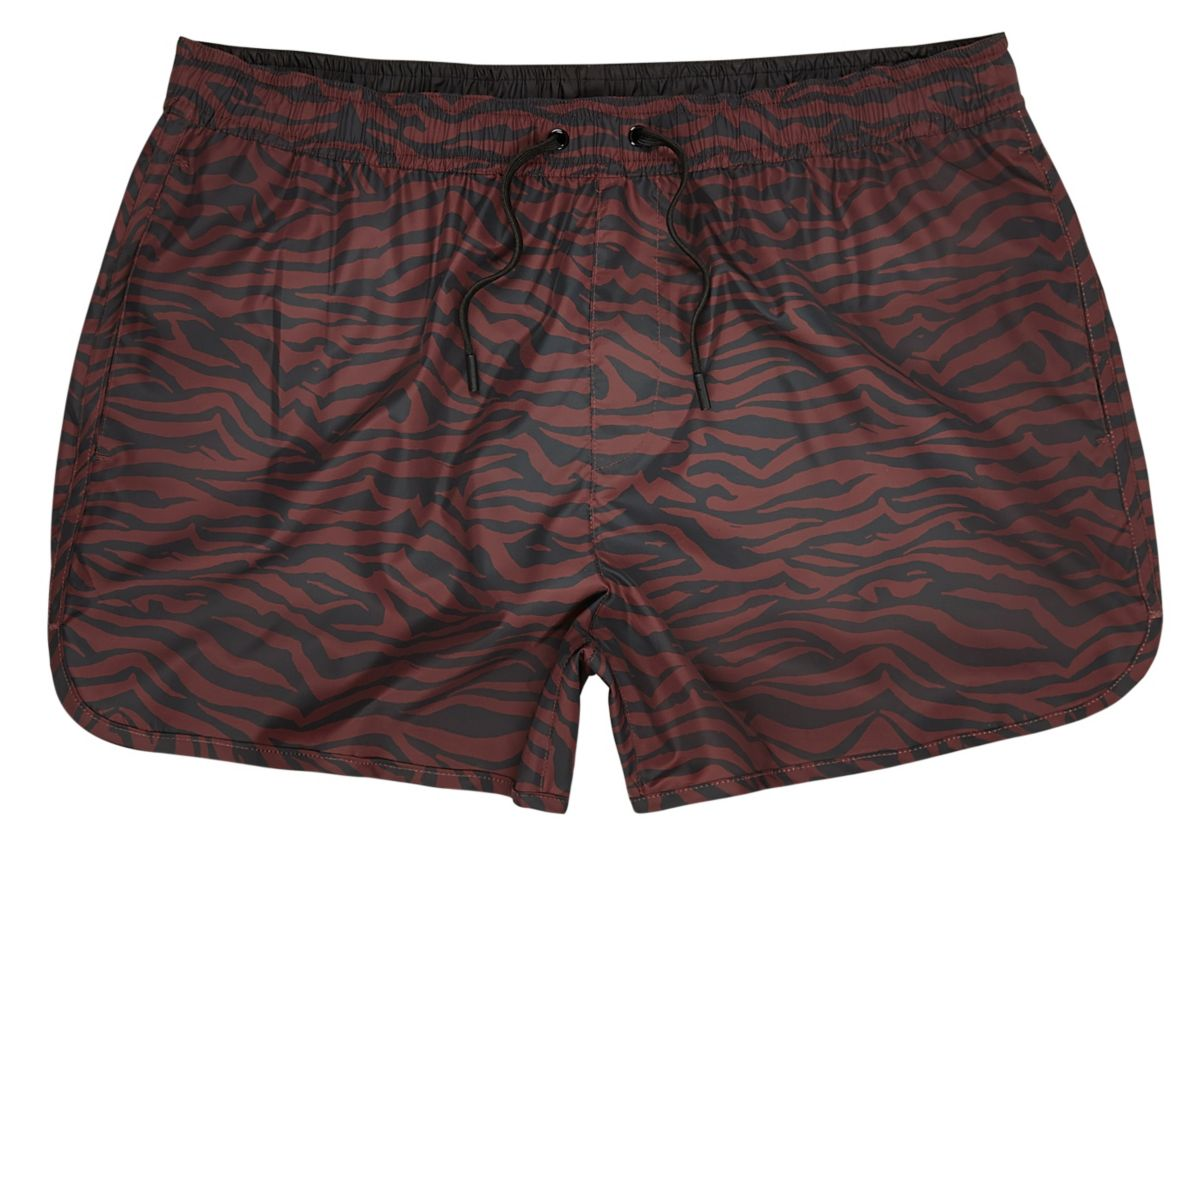 Red zebra print short swim trunks